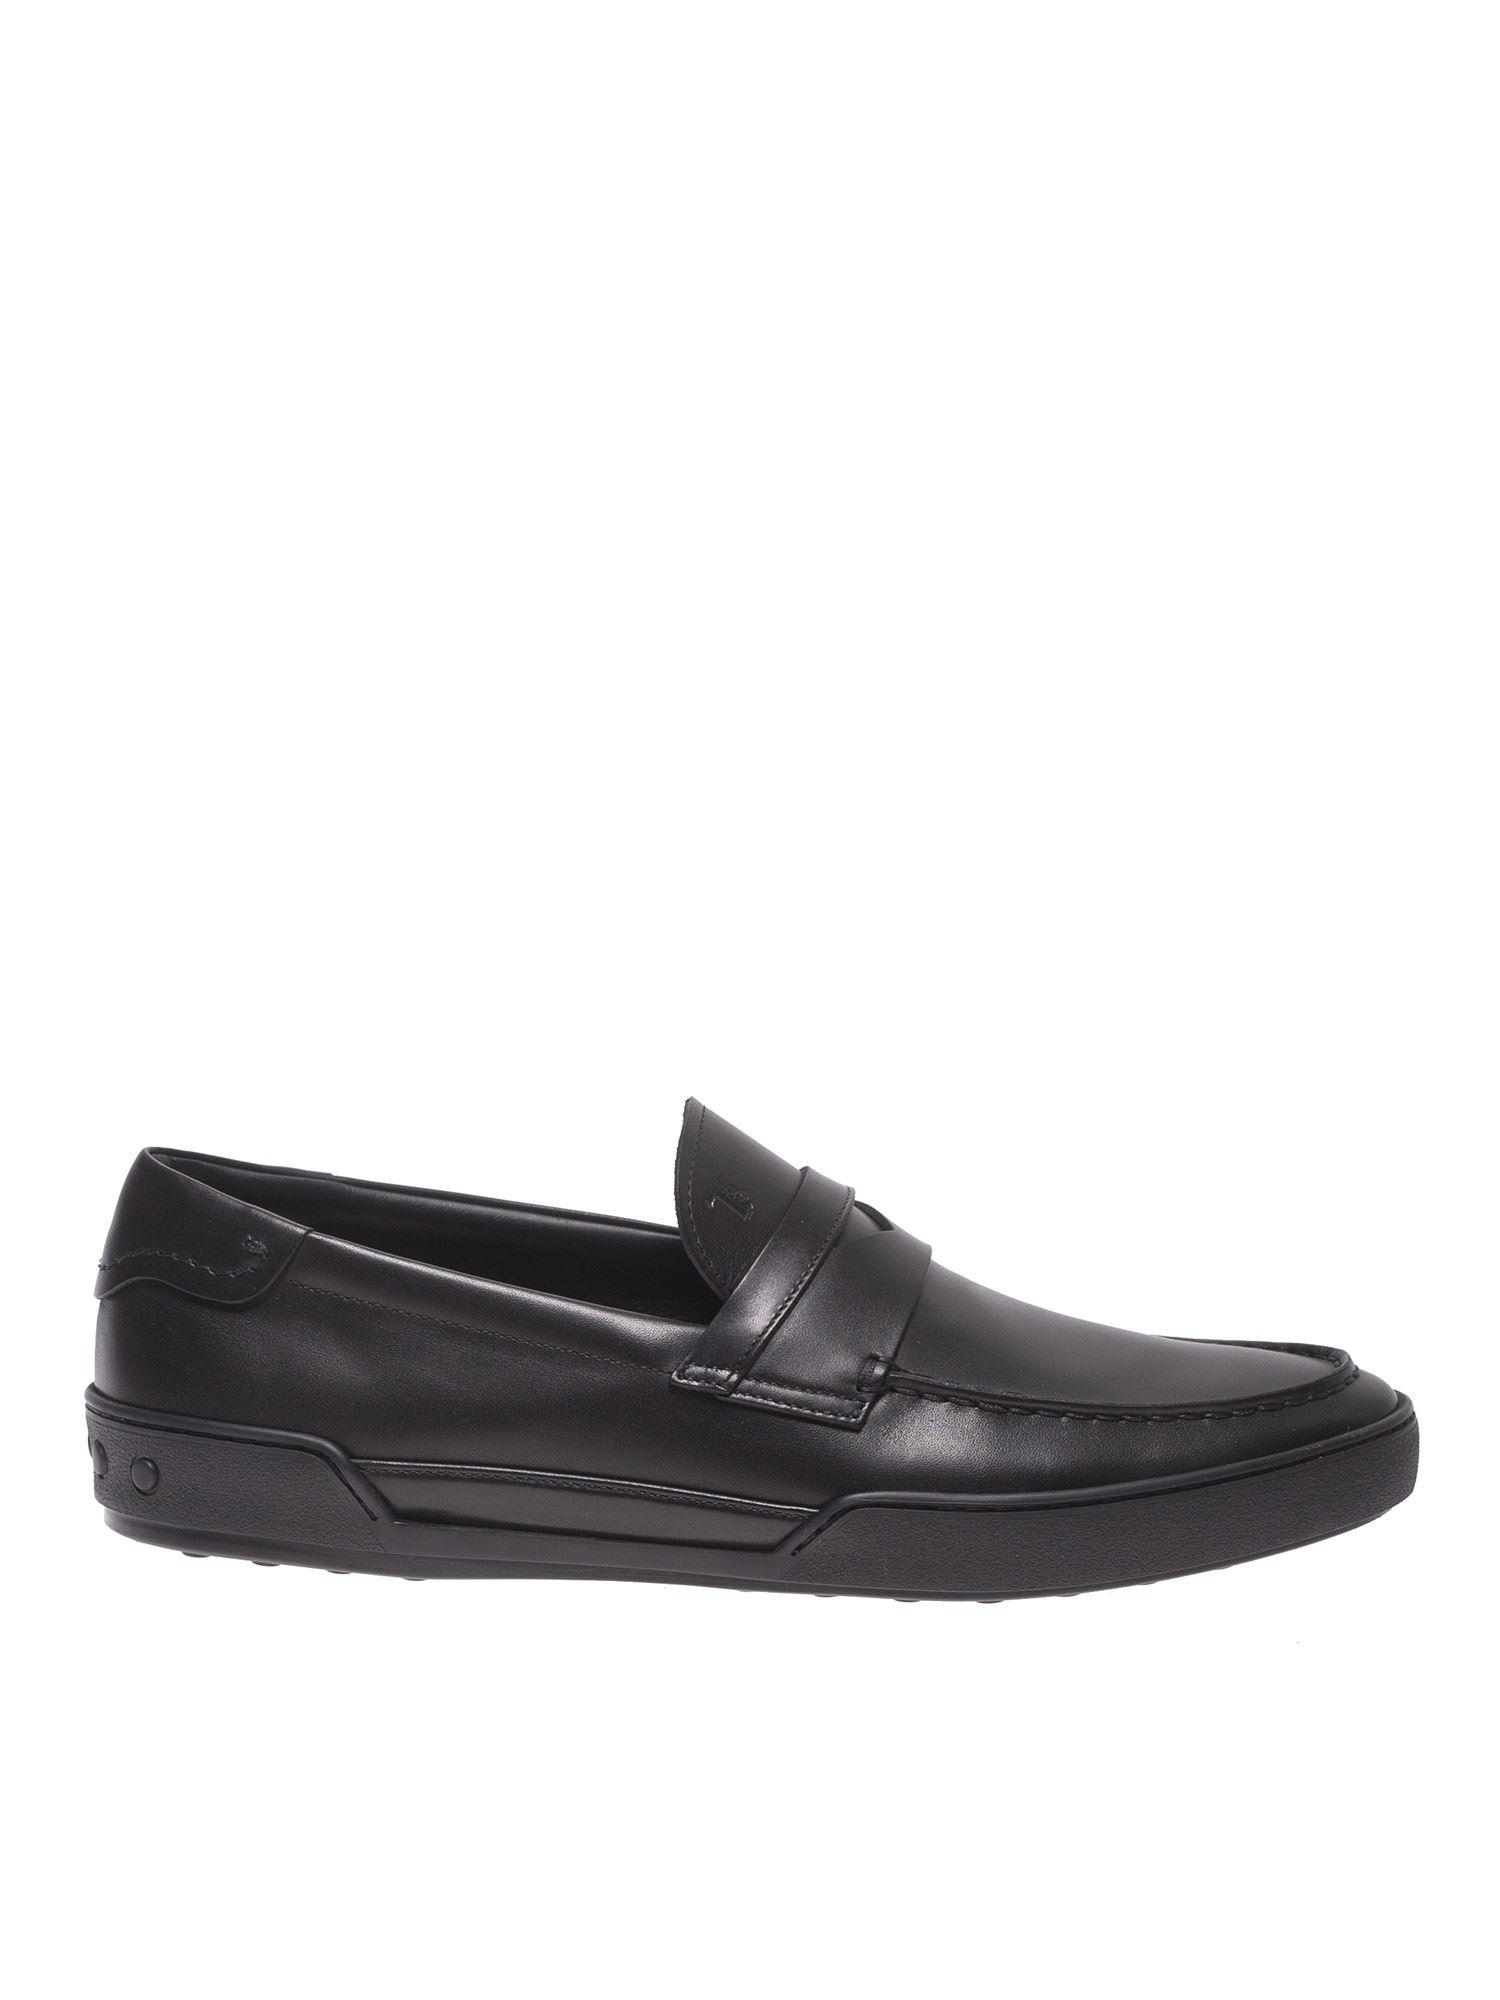 03f0346d823 Tod s Pennybar Loafers In Black Leather in Black for Men - Lyst